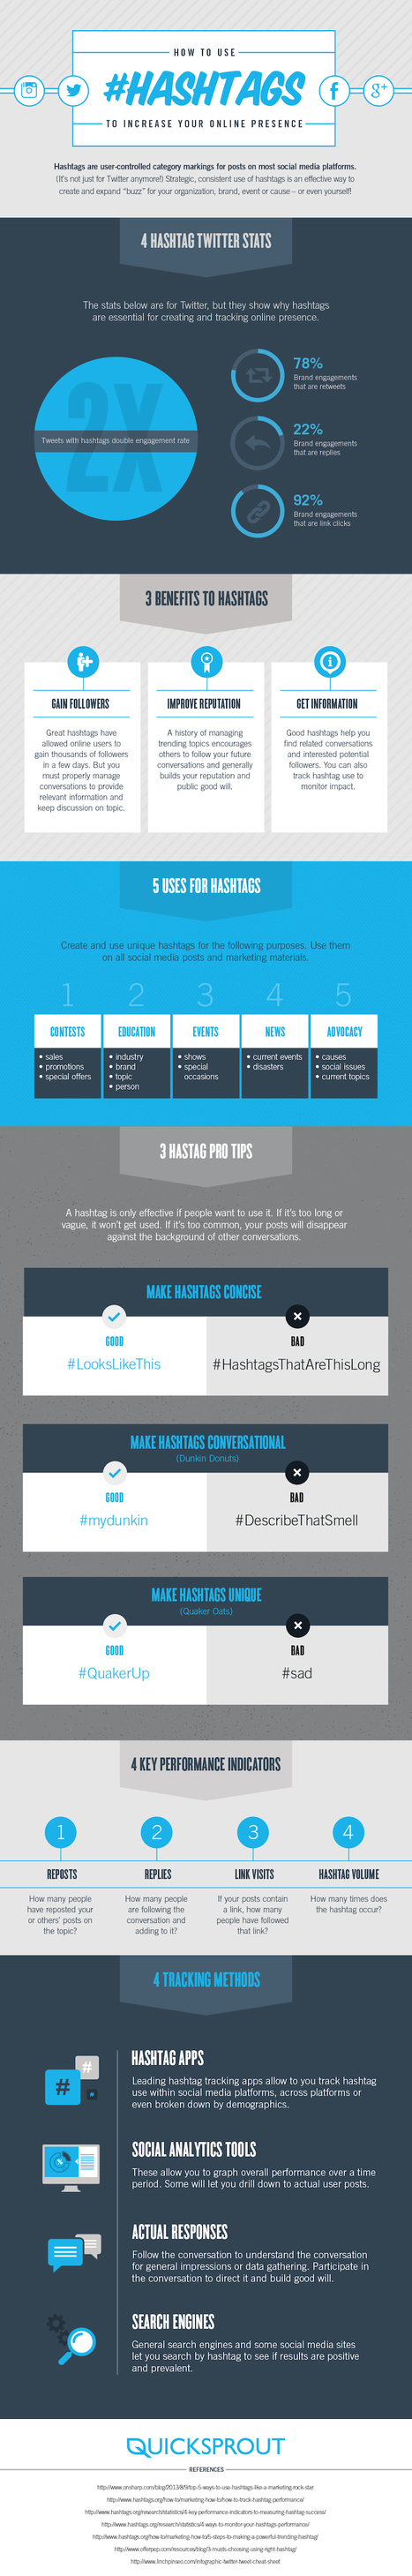 How To Use Hashtags To Boost Your Online Presence [INFOGRAPHIC] | Time to Learn | Scoop.it